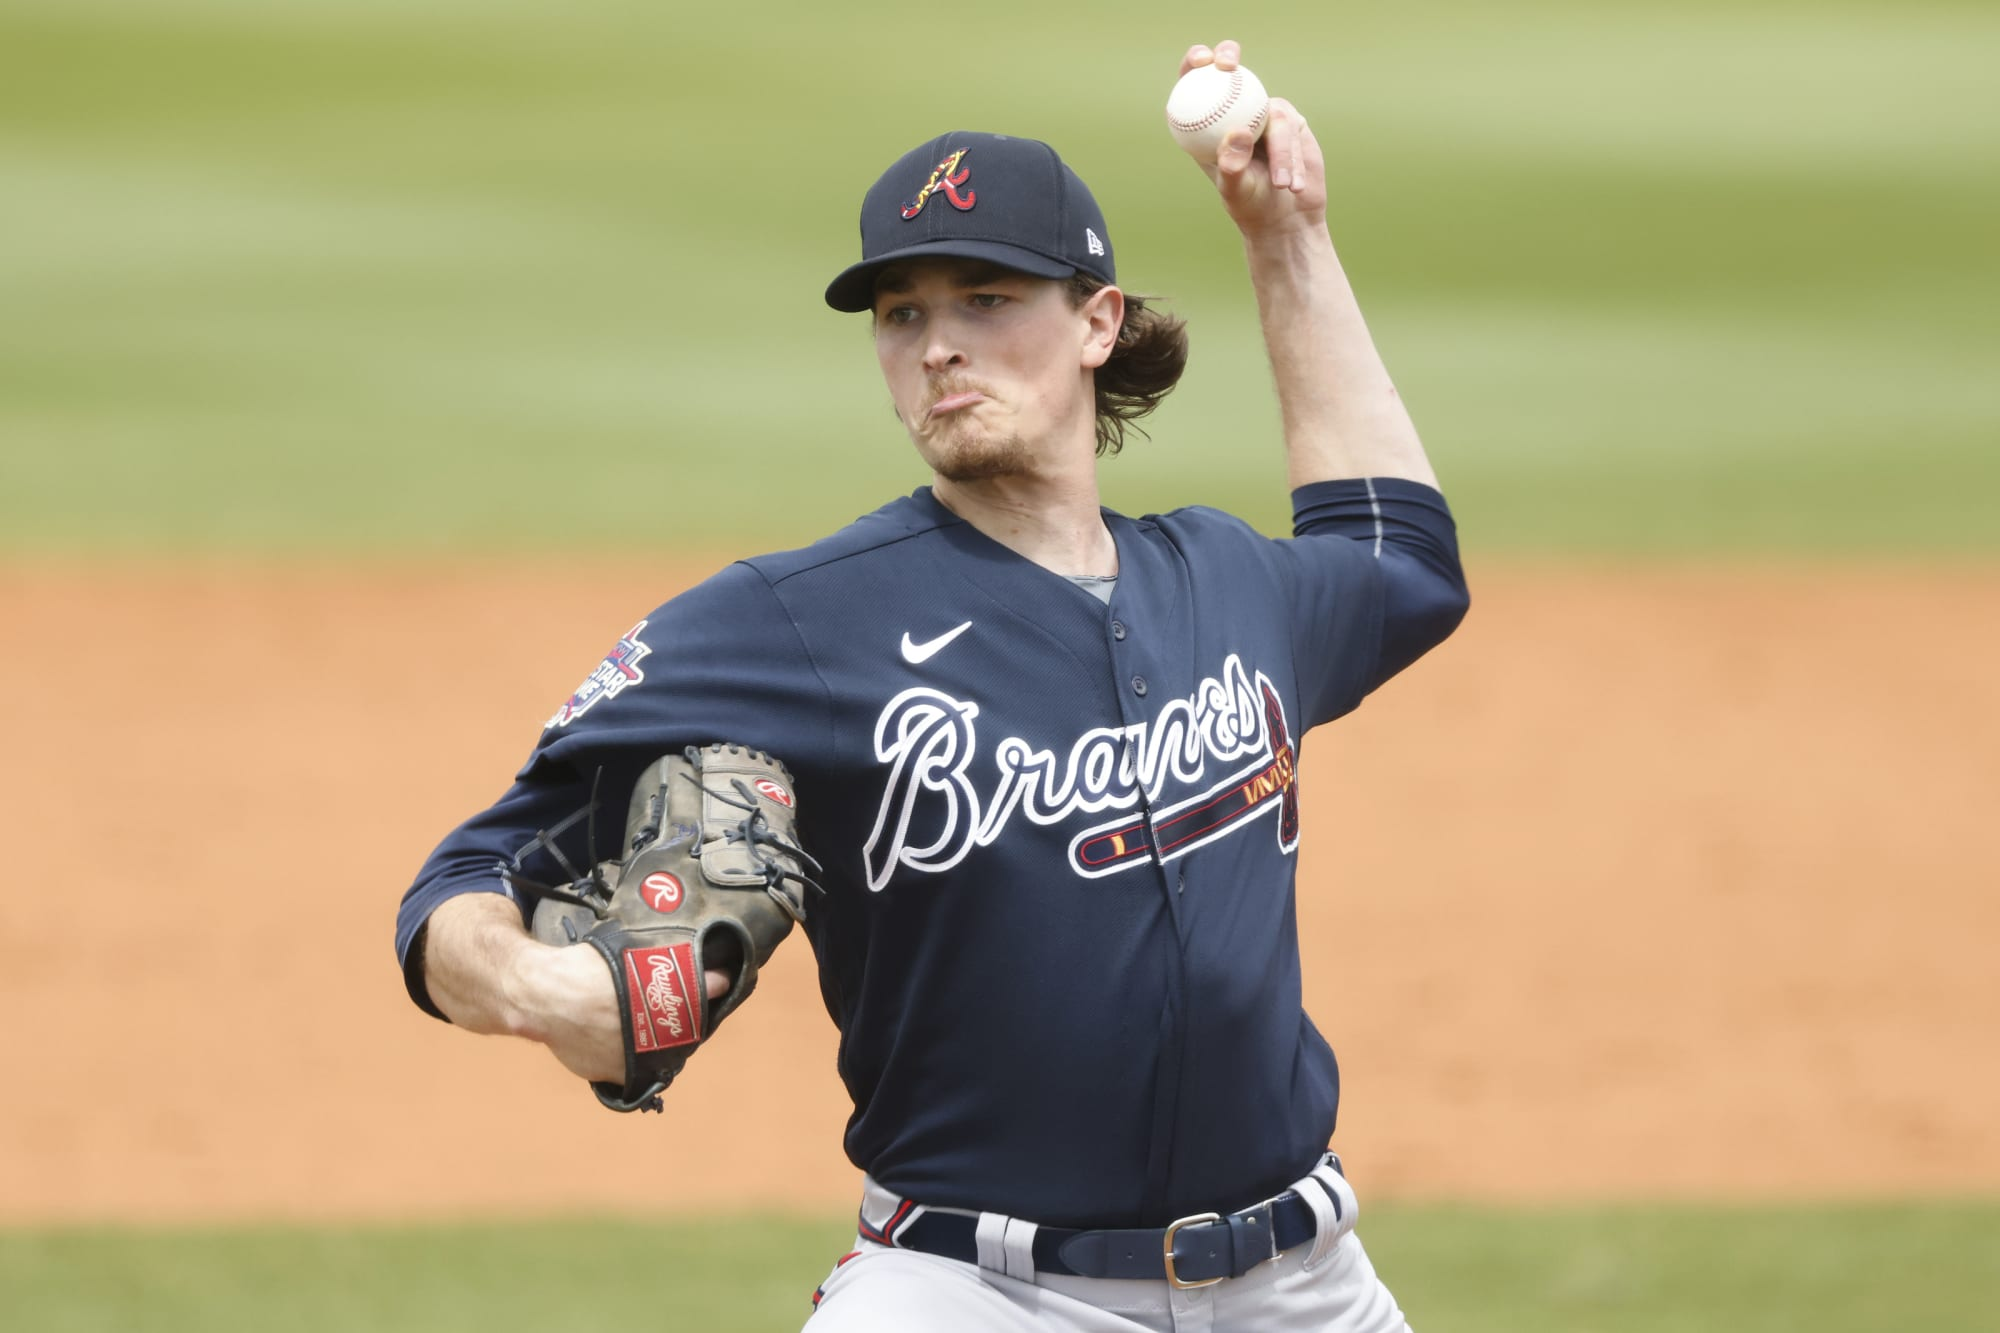 Braves Need the Ace Max Fried Back as He Returns